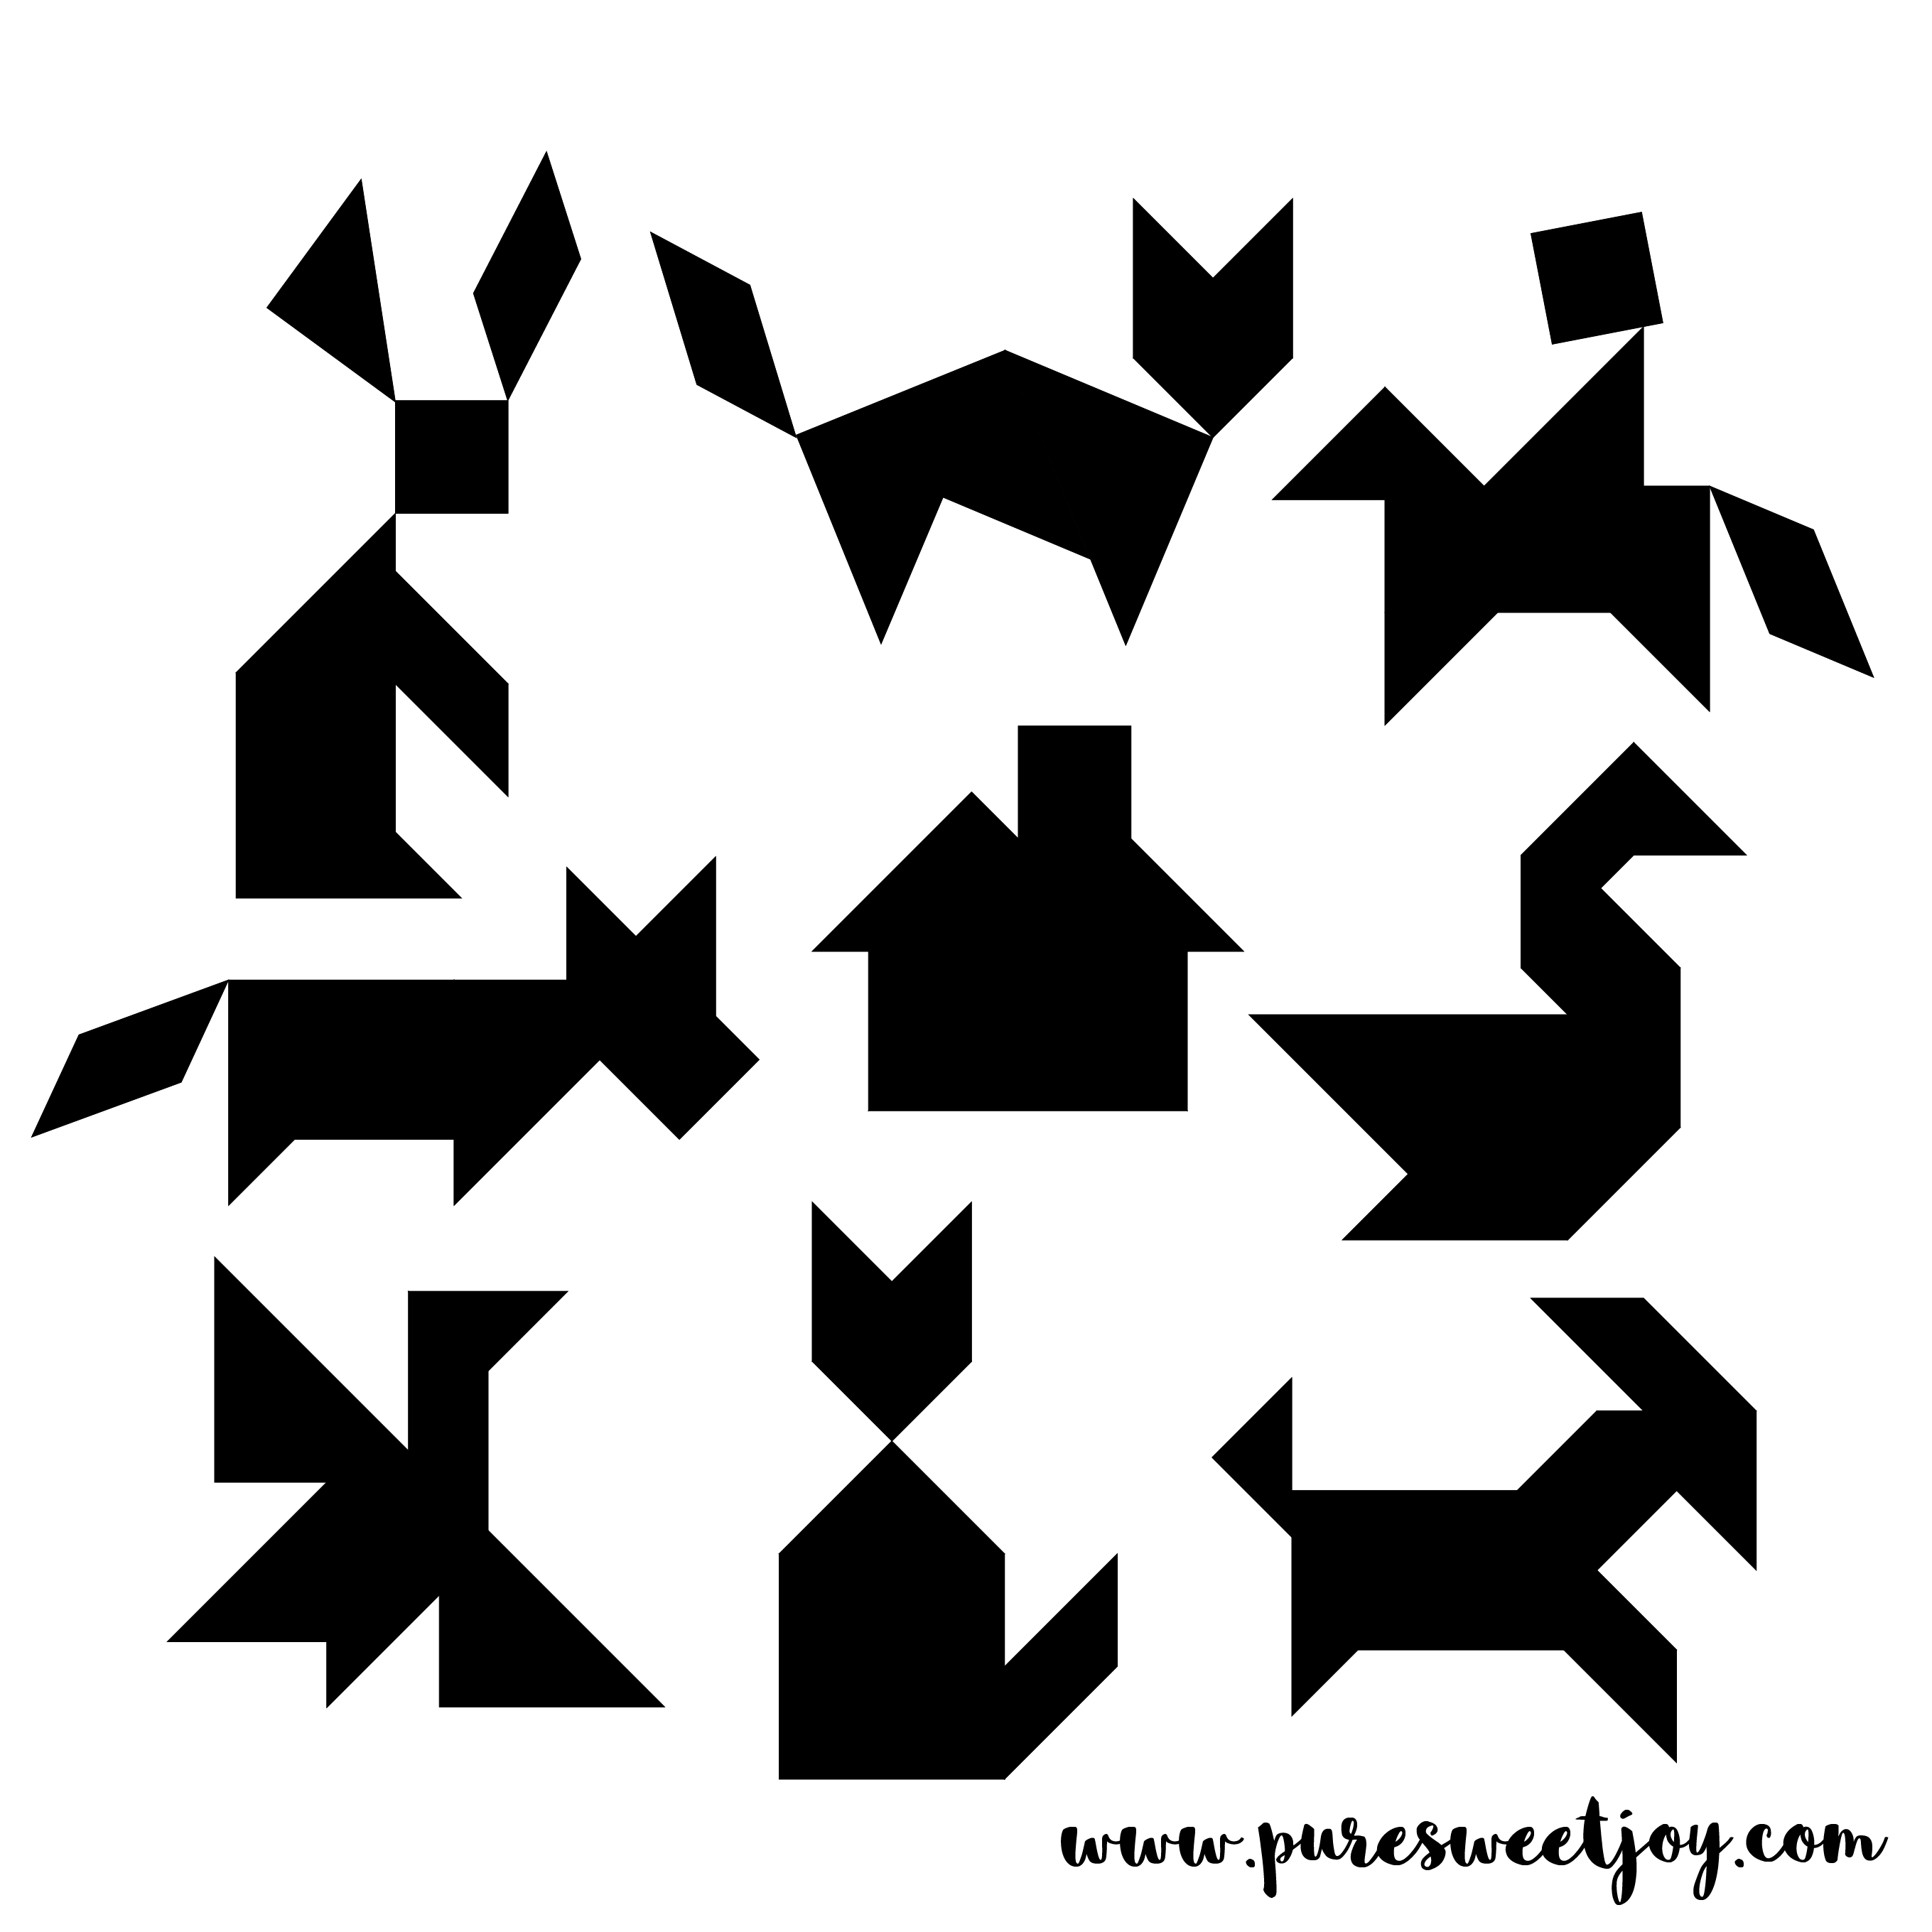 Tangram magnets made with air dry clay. Great as a gift or fun craft